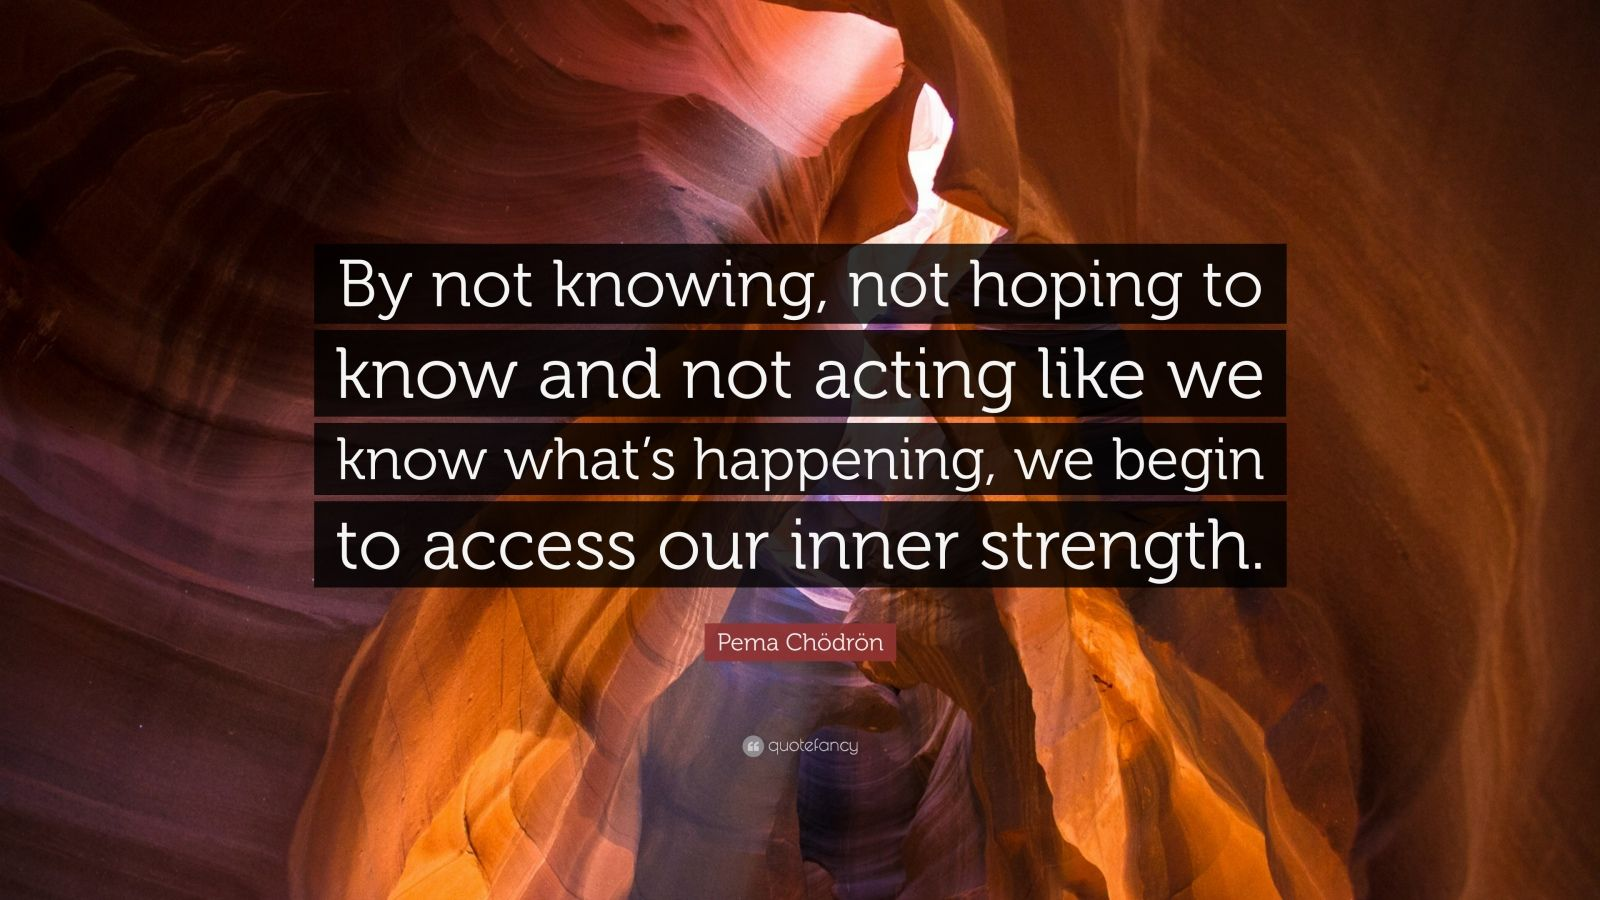 """Pema Chödrön Quote: """"By not knowing, not hoping to know and not acting like we know what's happening, we begin to access our inner strength."""""""